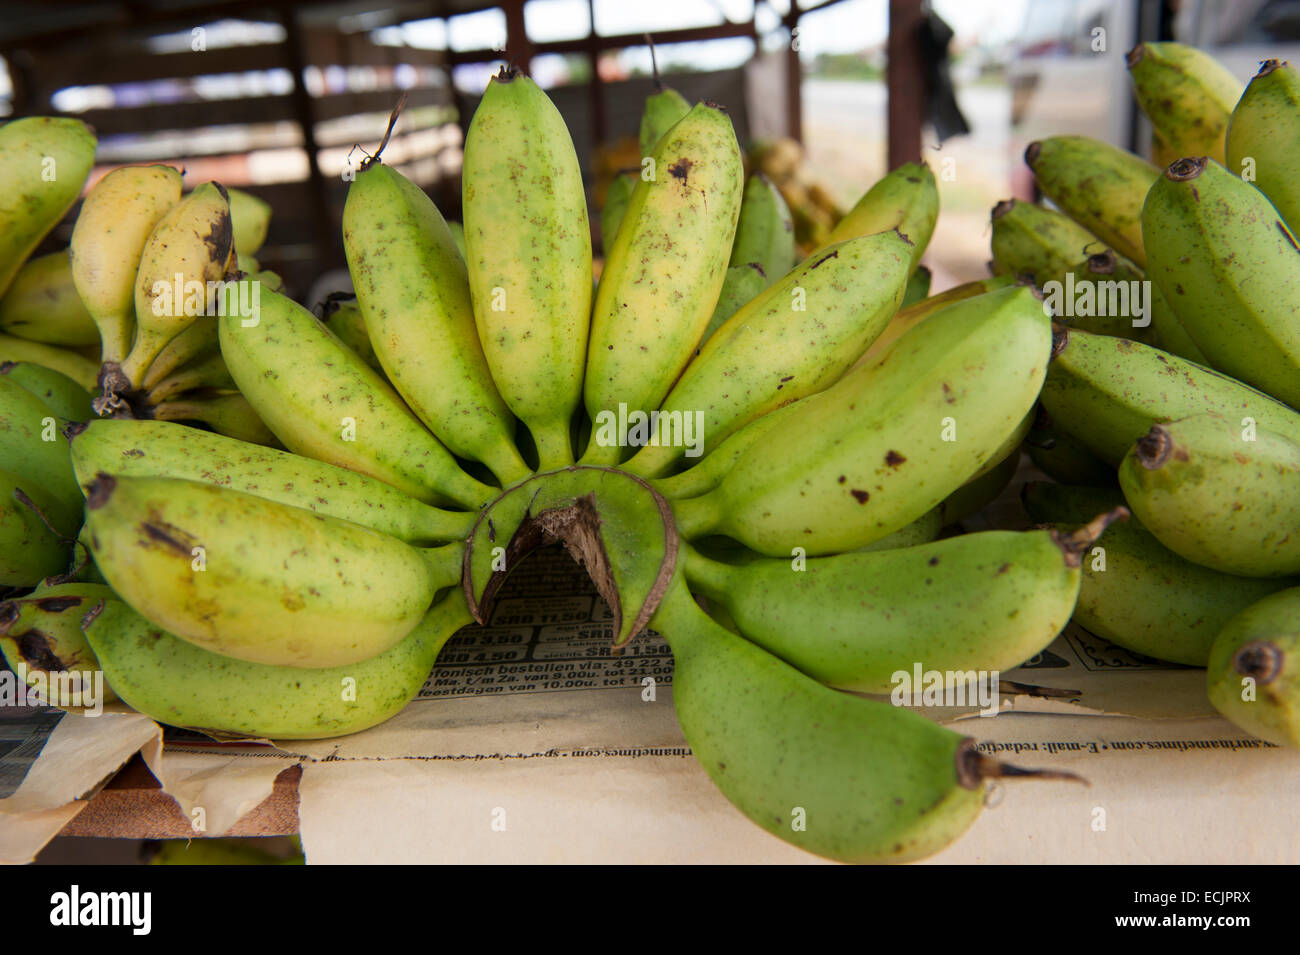 Bananas for sales at a roadside store in Tamanredjo, Suriname - Stock Image